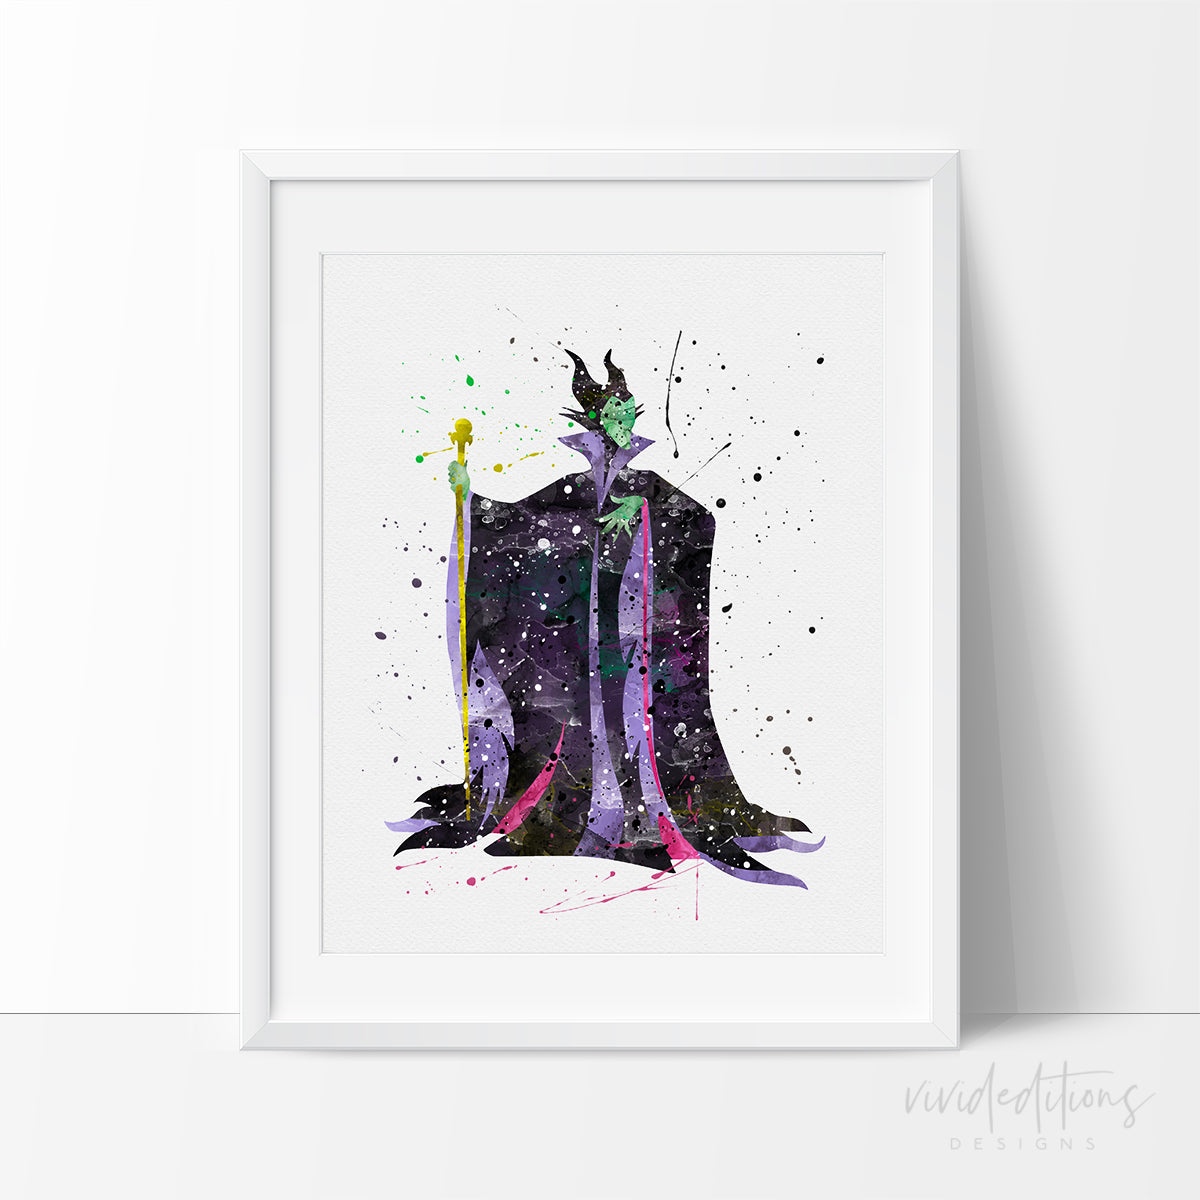 Maleficent 3 Watercolor Art Print Art Print - VIVIDEDITIONS